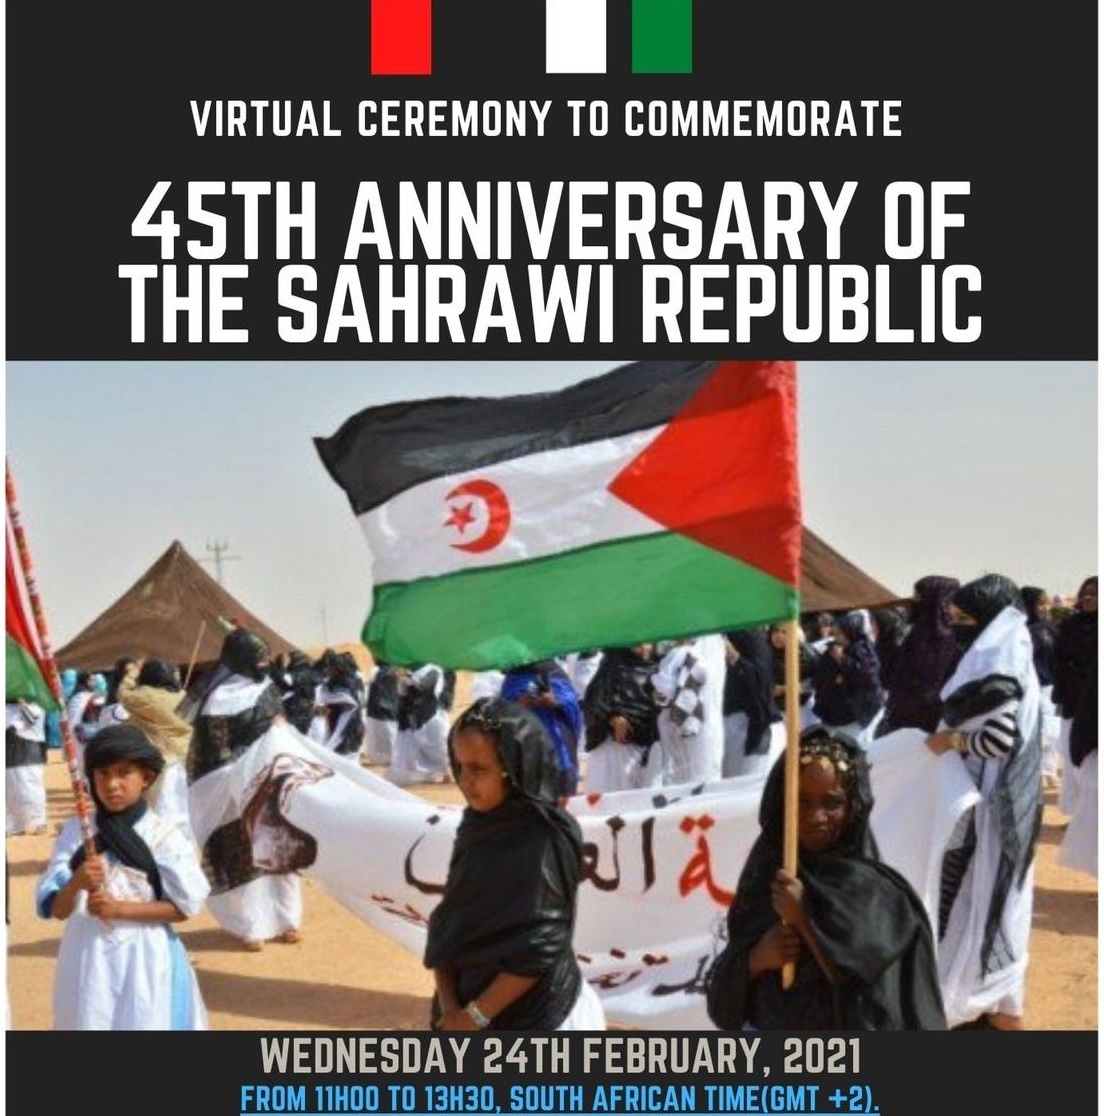 https://www.spsrasd.info/news/sites/default/files/field/image/45th_sadr_anniversary_africa_will_never_be_free_as_long_as_one_of_its_countries_remains_occupied.jpg